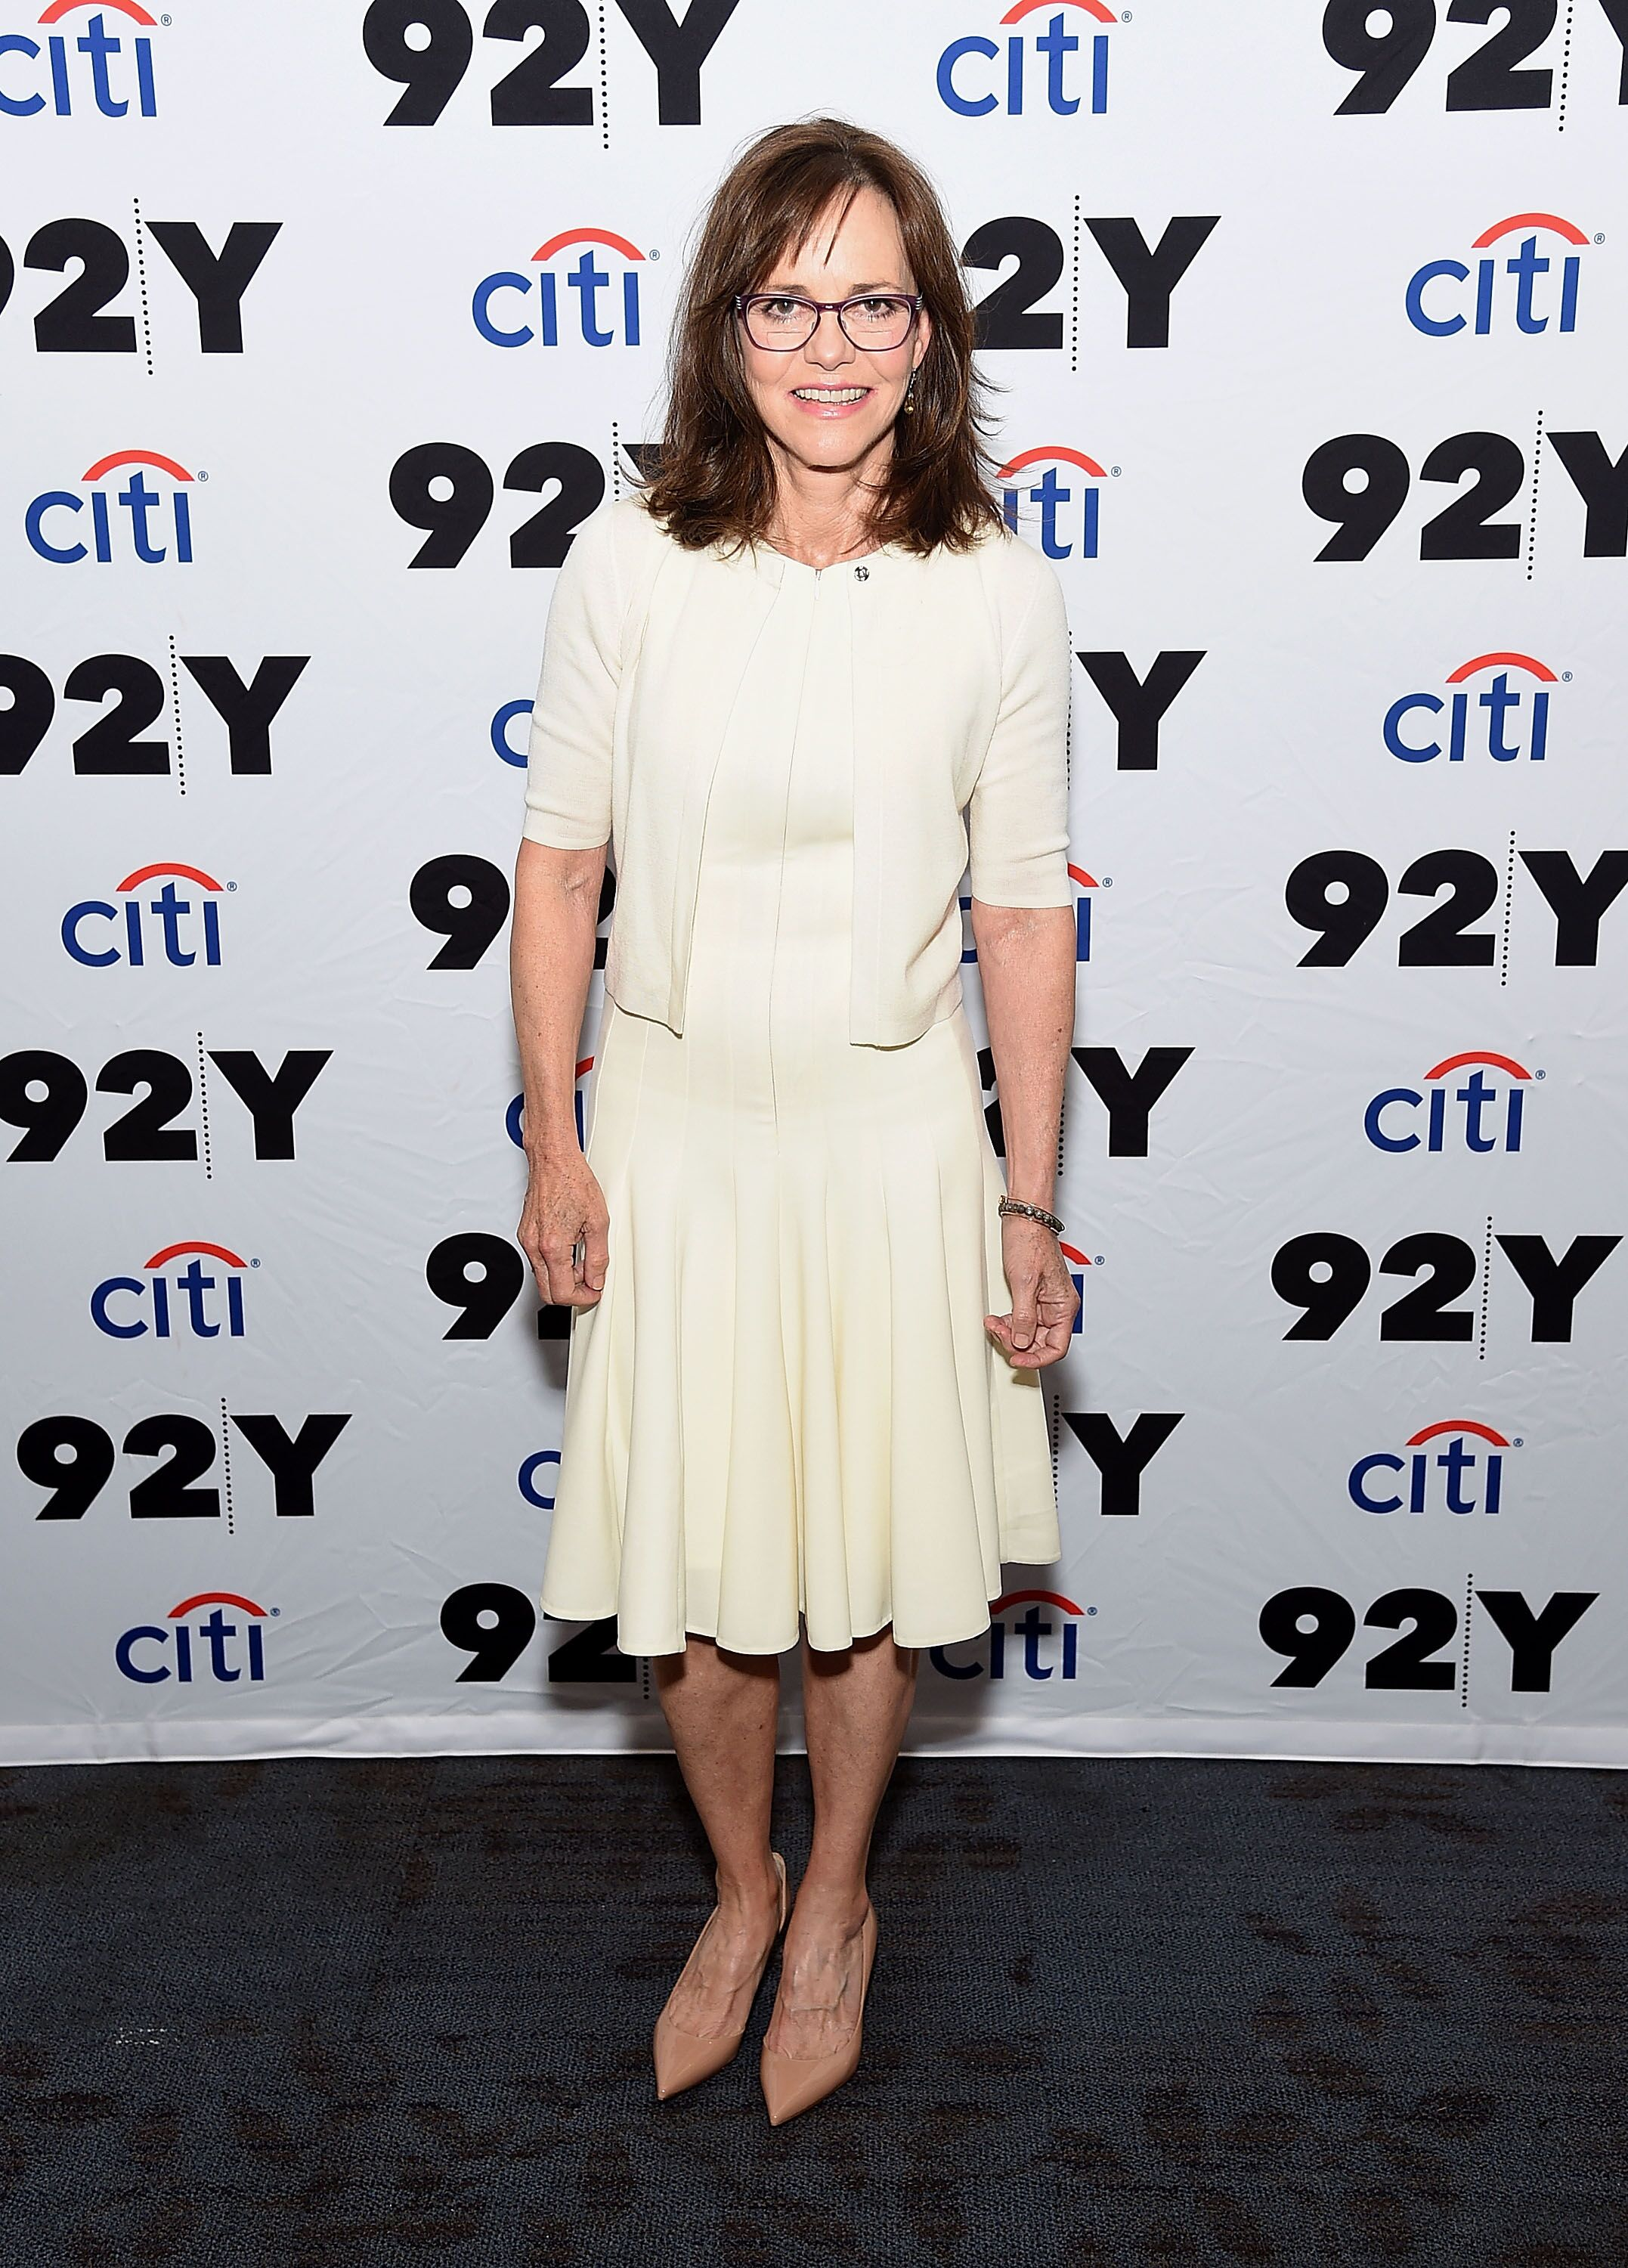 Sally Field poses for photos at the 92nd Street Y Presentd. | Source: Getty Images